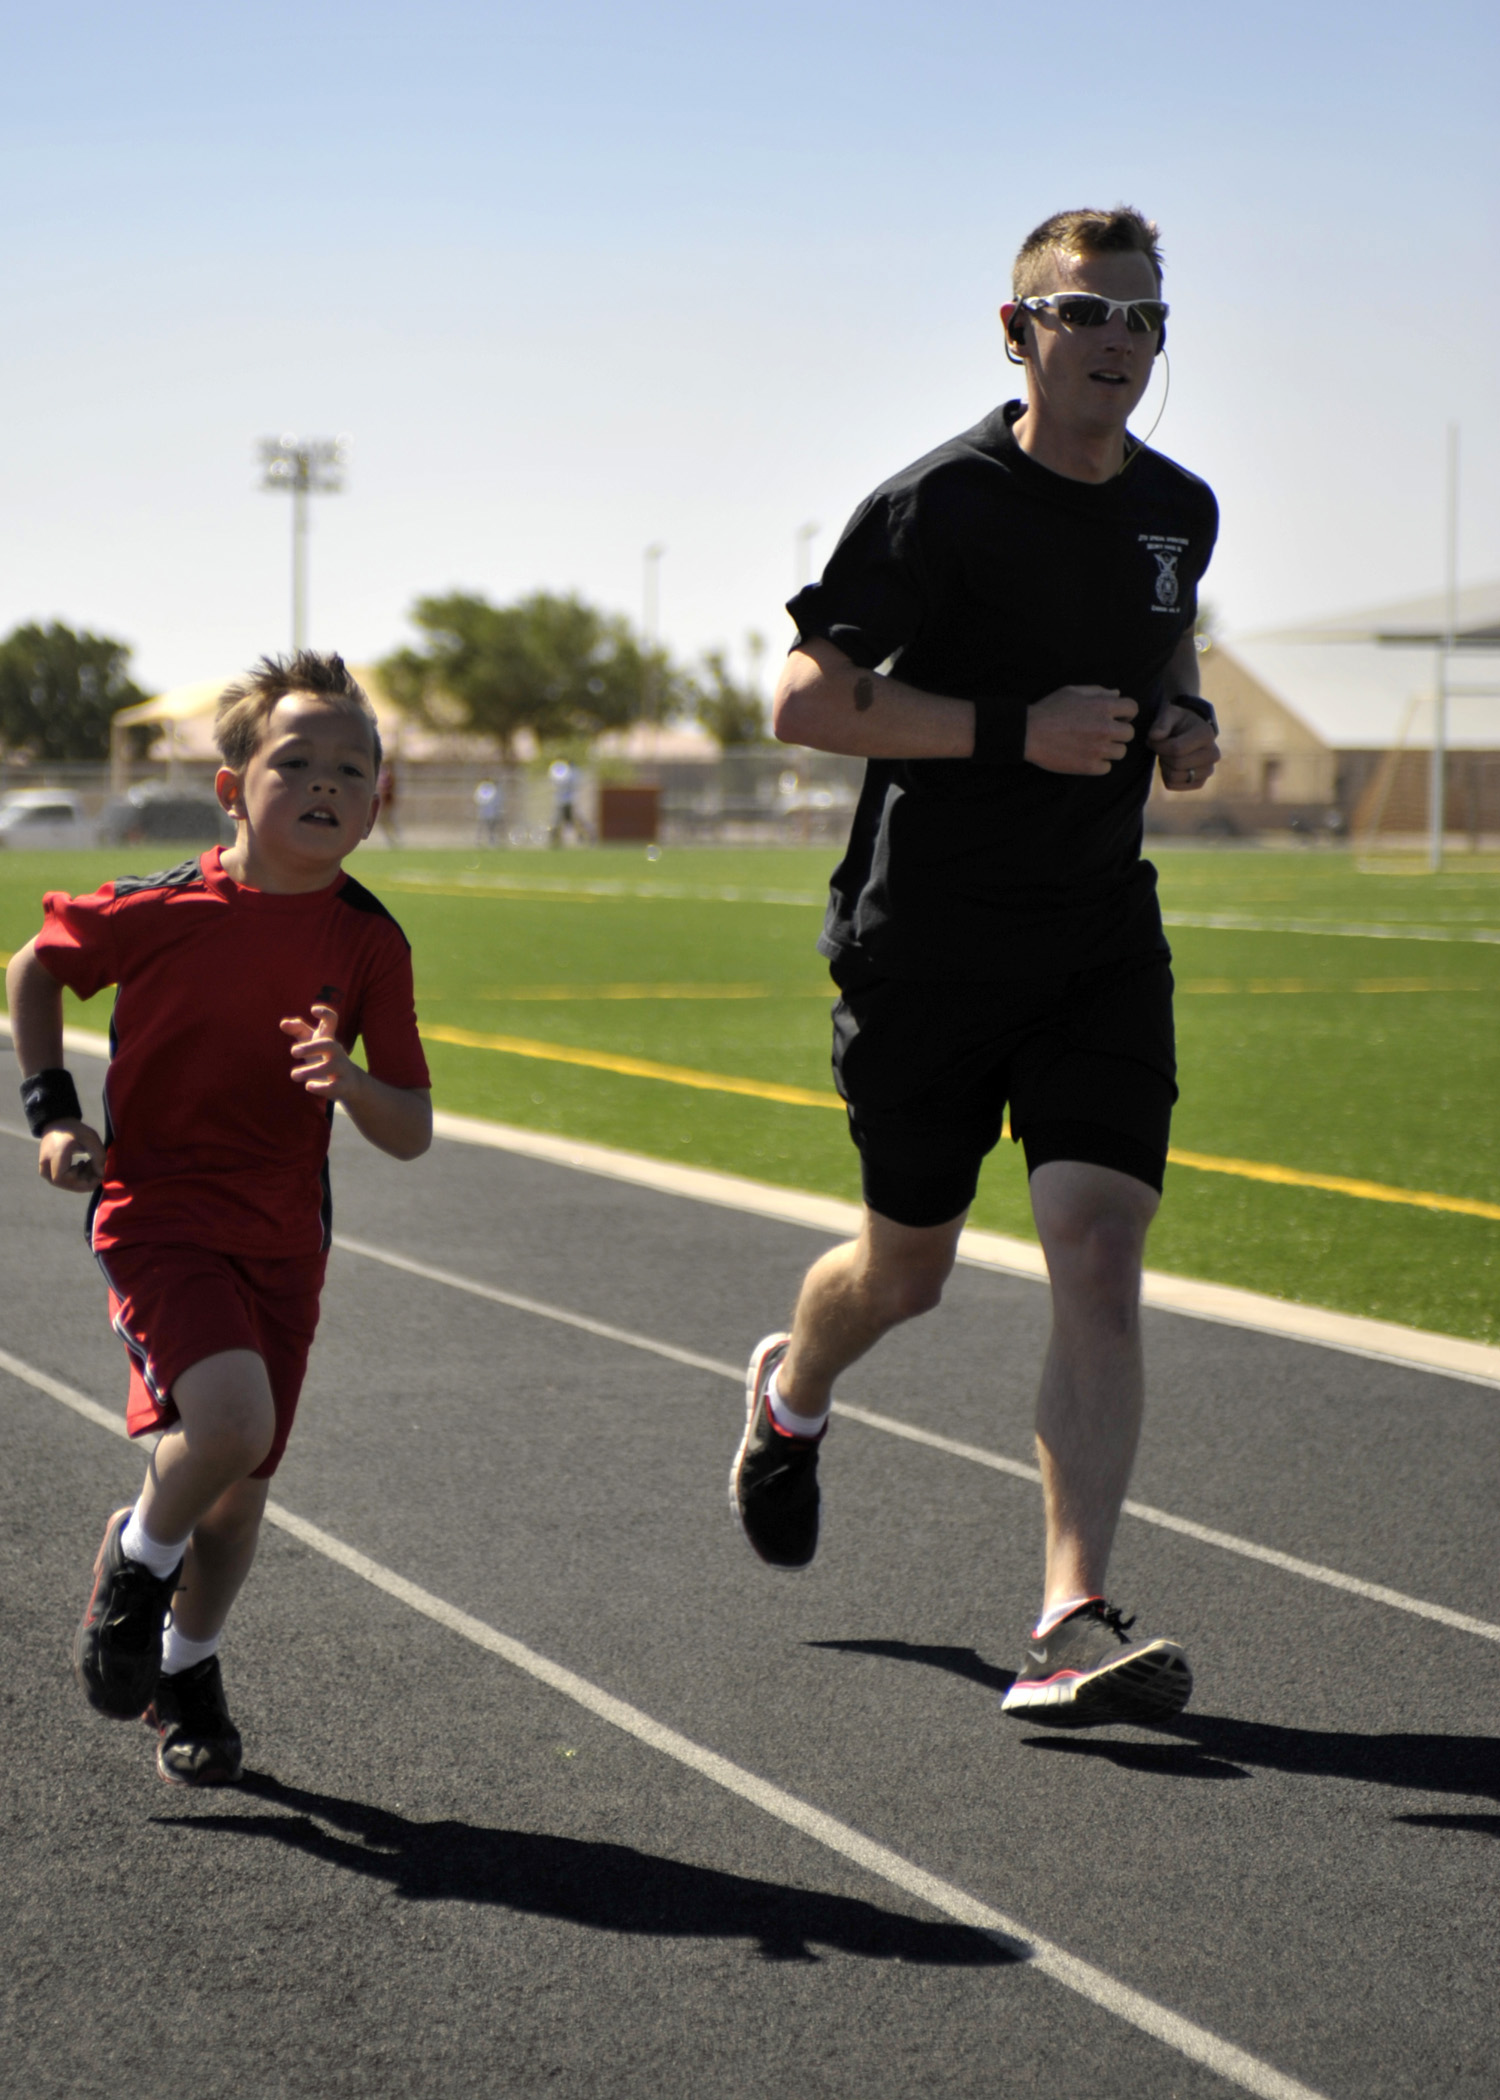 U.S. Air Force Tech. Sgt. Robert Wilson, 27th Special Operations Security Forces Squadron, and son Tyler , 7, sprint to the finish of the two mile race during the America's Kids Run, at Cannon Air Force Base, N.M. May 21, 2011. Sergeant Wilson and Tyler were two of roughly 70 parents and children that competed in the morning's events. (U.S. Air Force photo by Airman Ericka Engblom)